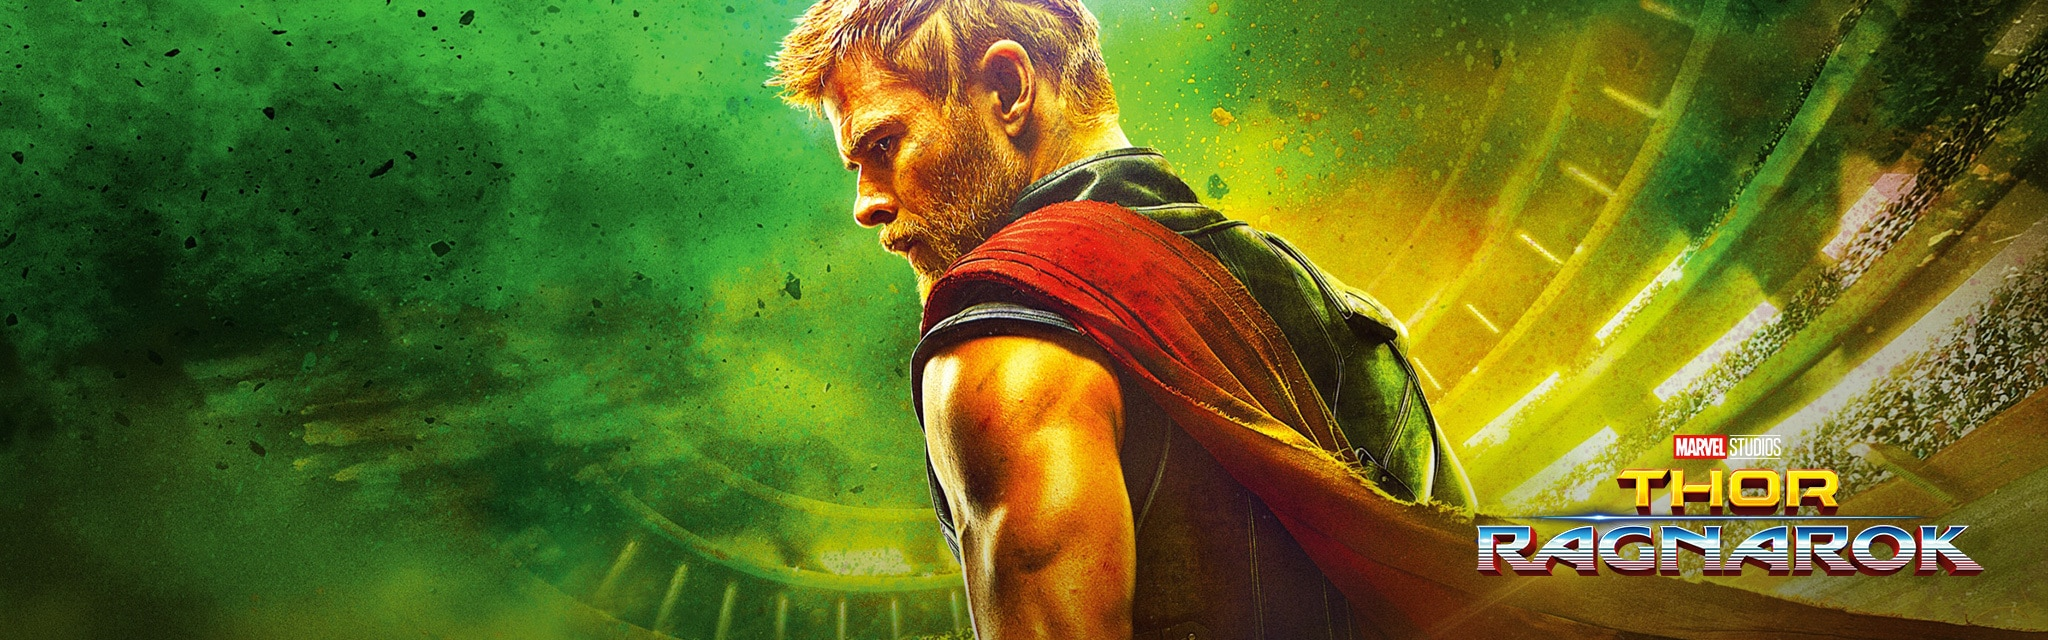 Thor: Ragnarok - Pre Release - Movie Hero